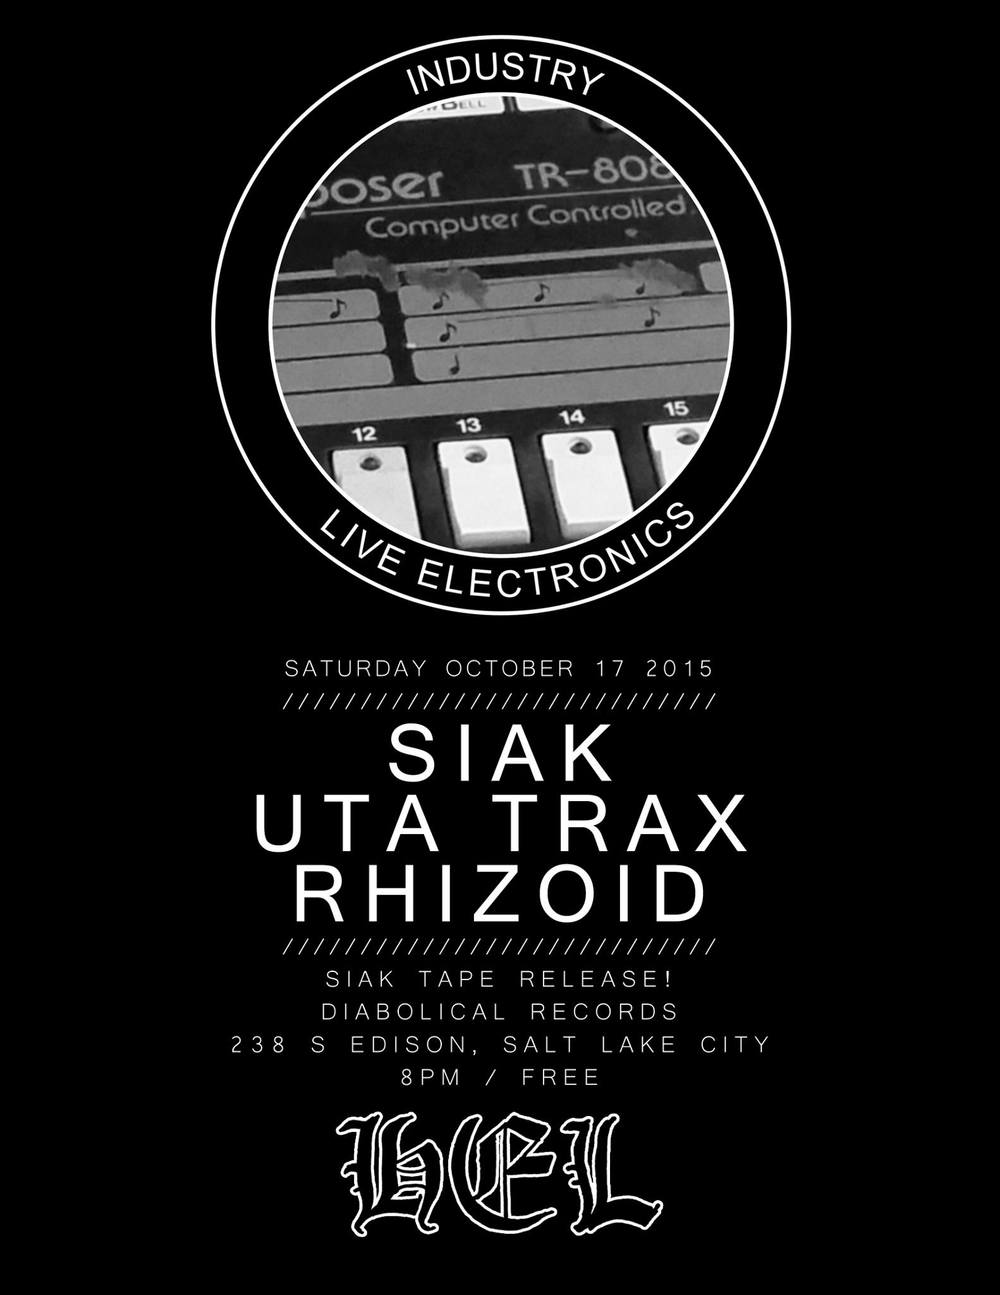 hel audio siak uta trax rhizoid diabolical records salt lake city